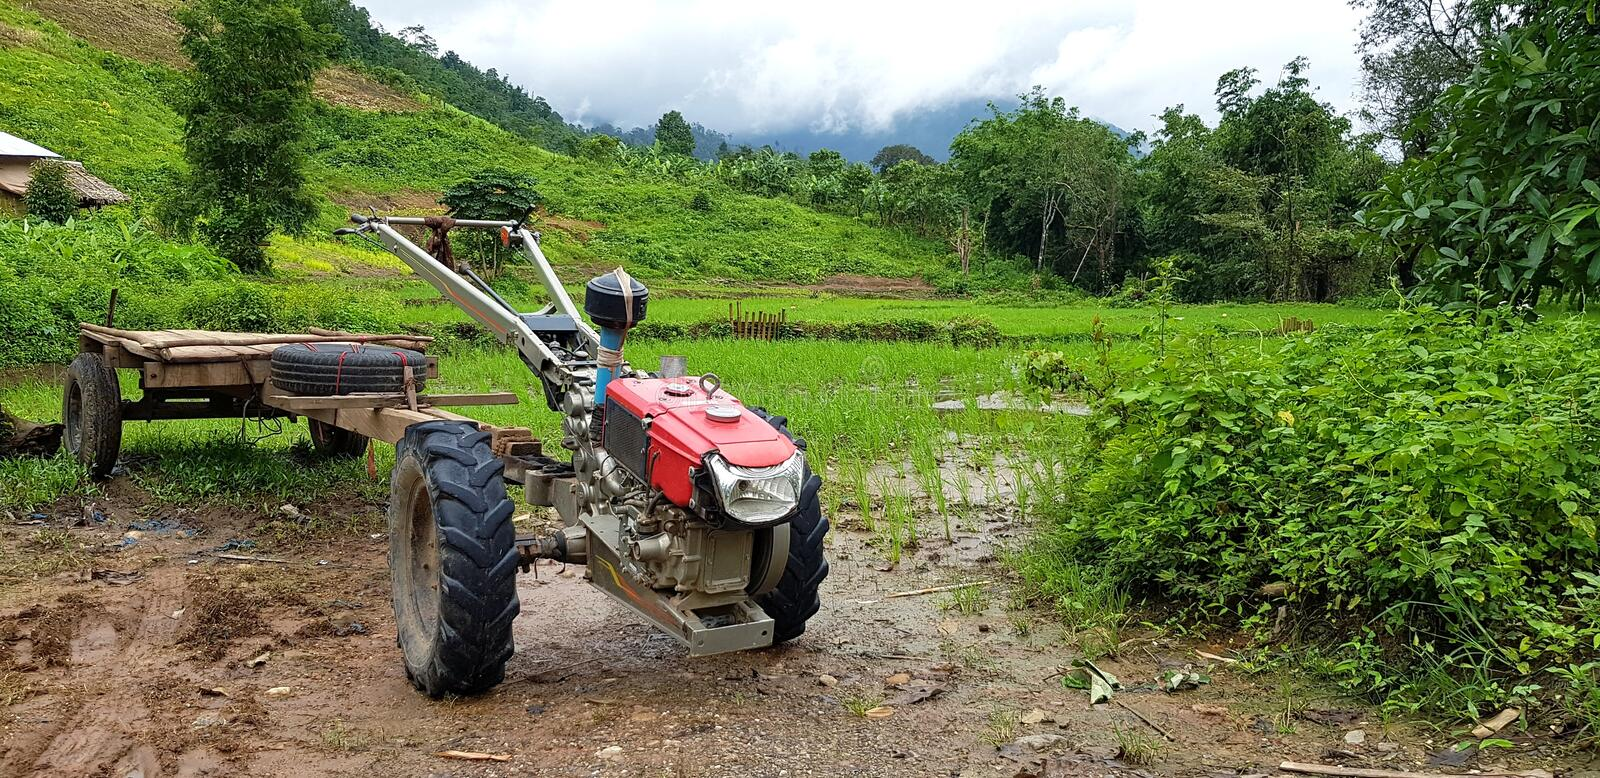 Red E-taen Thai tractor modifies to used for the shuttle and pick up or drop off people parked on mud ground royalty free stock photo